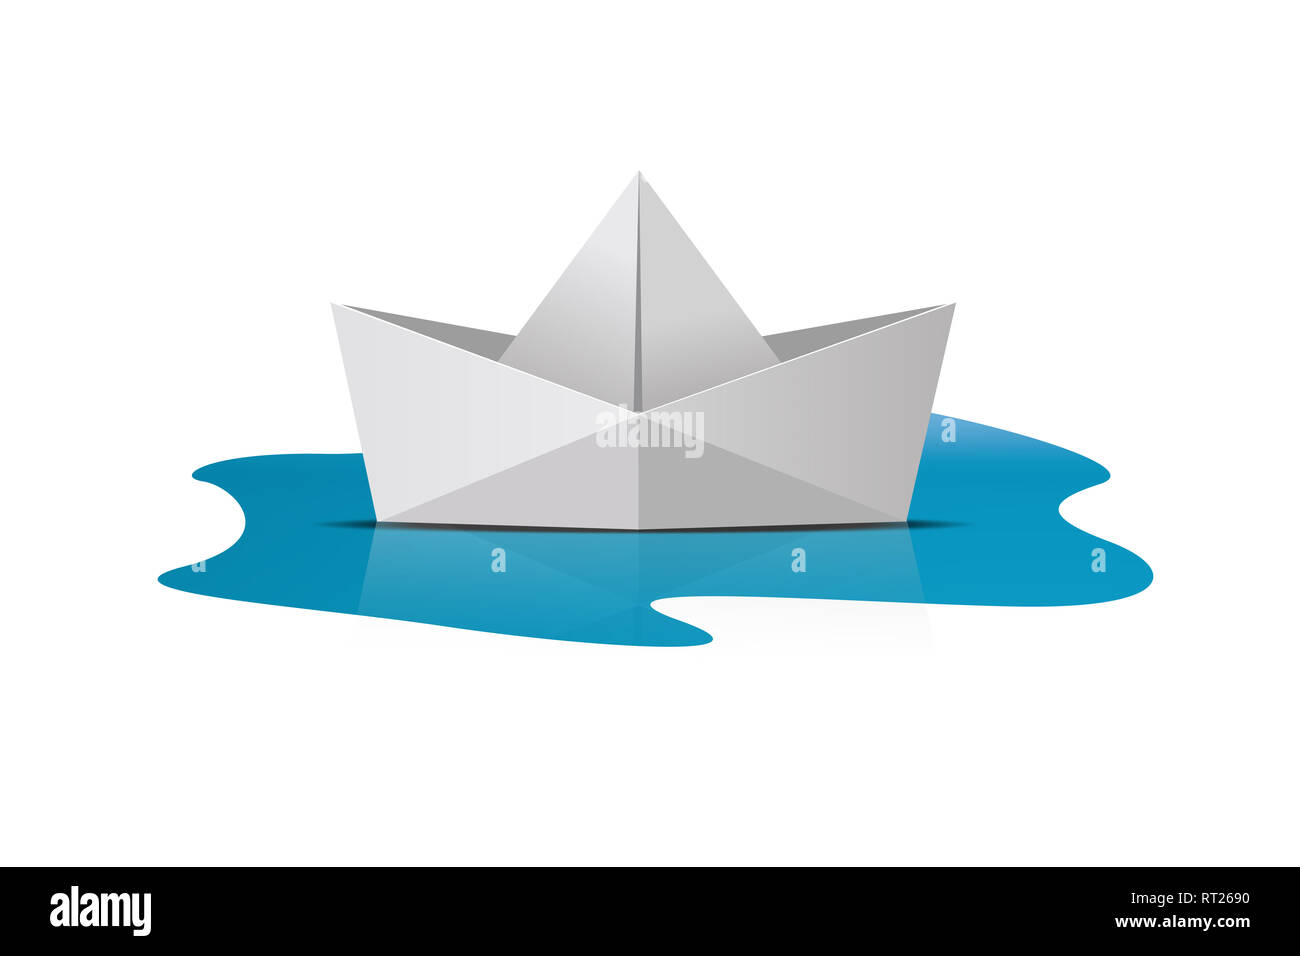 Folder paper ship boat origami on sea water, isolated on white background. - Stock Image